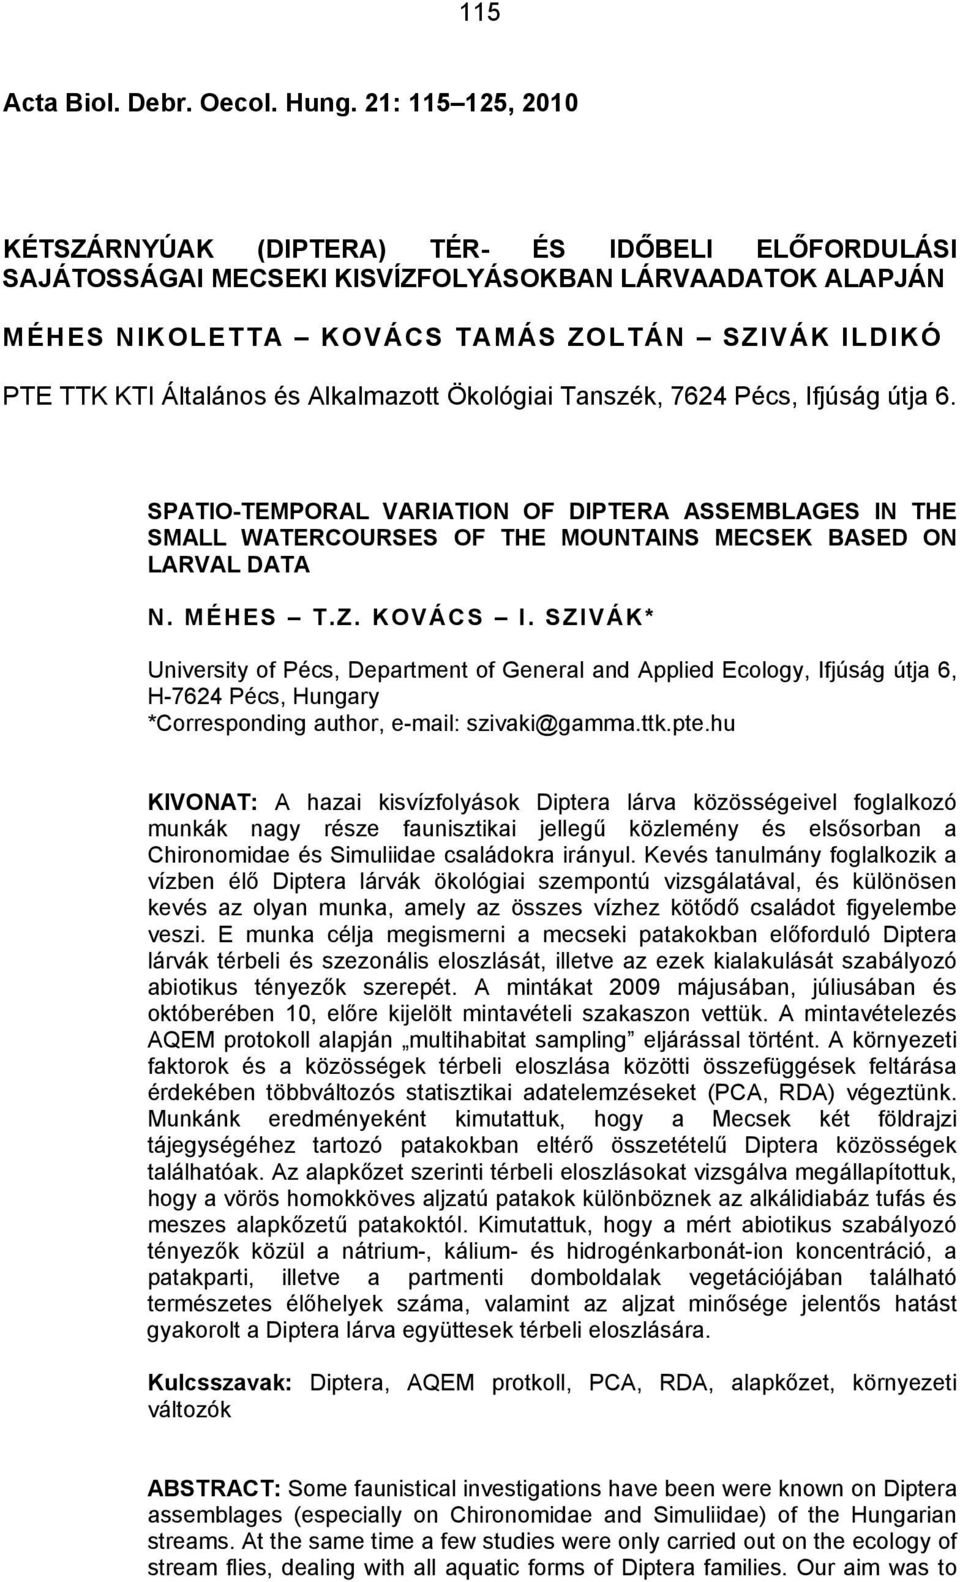 Általános és Alkalmazott Ökológiai Tanszék, 7624 Pécs, Ifjúság útja 6. SPATIO-TEMPORAL VARIATION OF DIPTERA ASSEMBLAGES IN THE SMALL WATERCOURSES OF THE MOUNTAINS MECSEK BASED ON LARVAL DATA N.